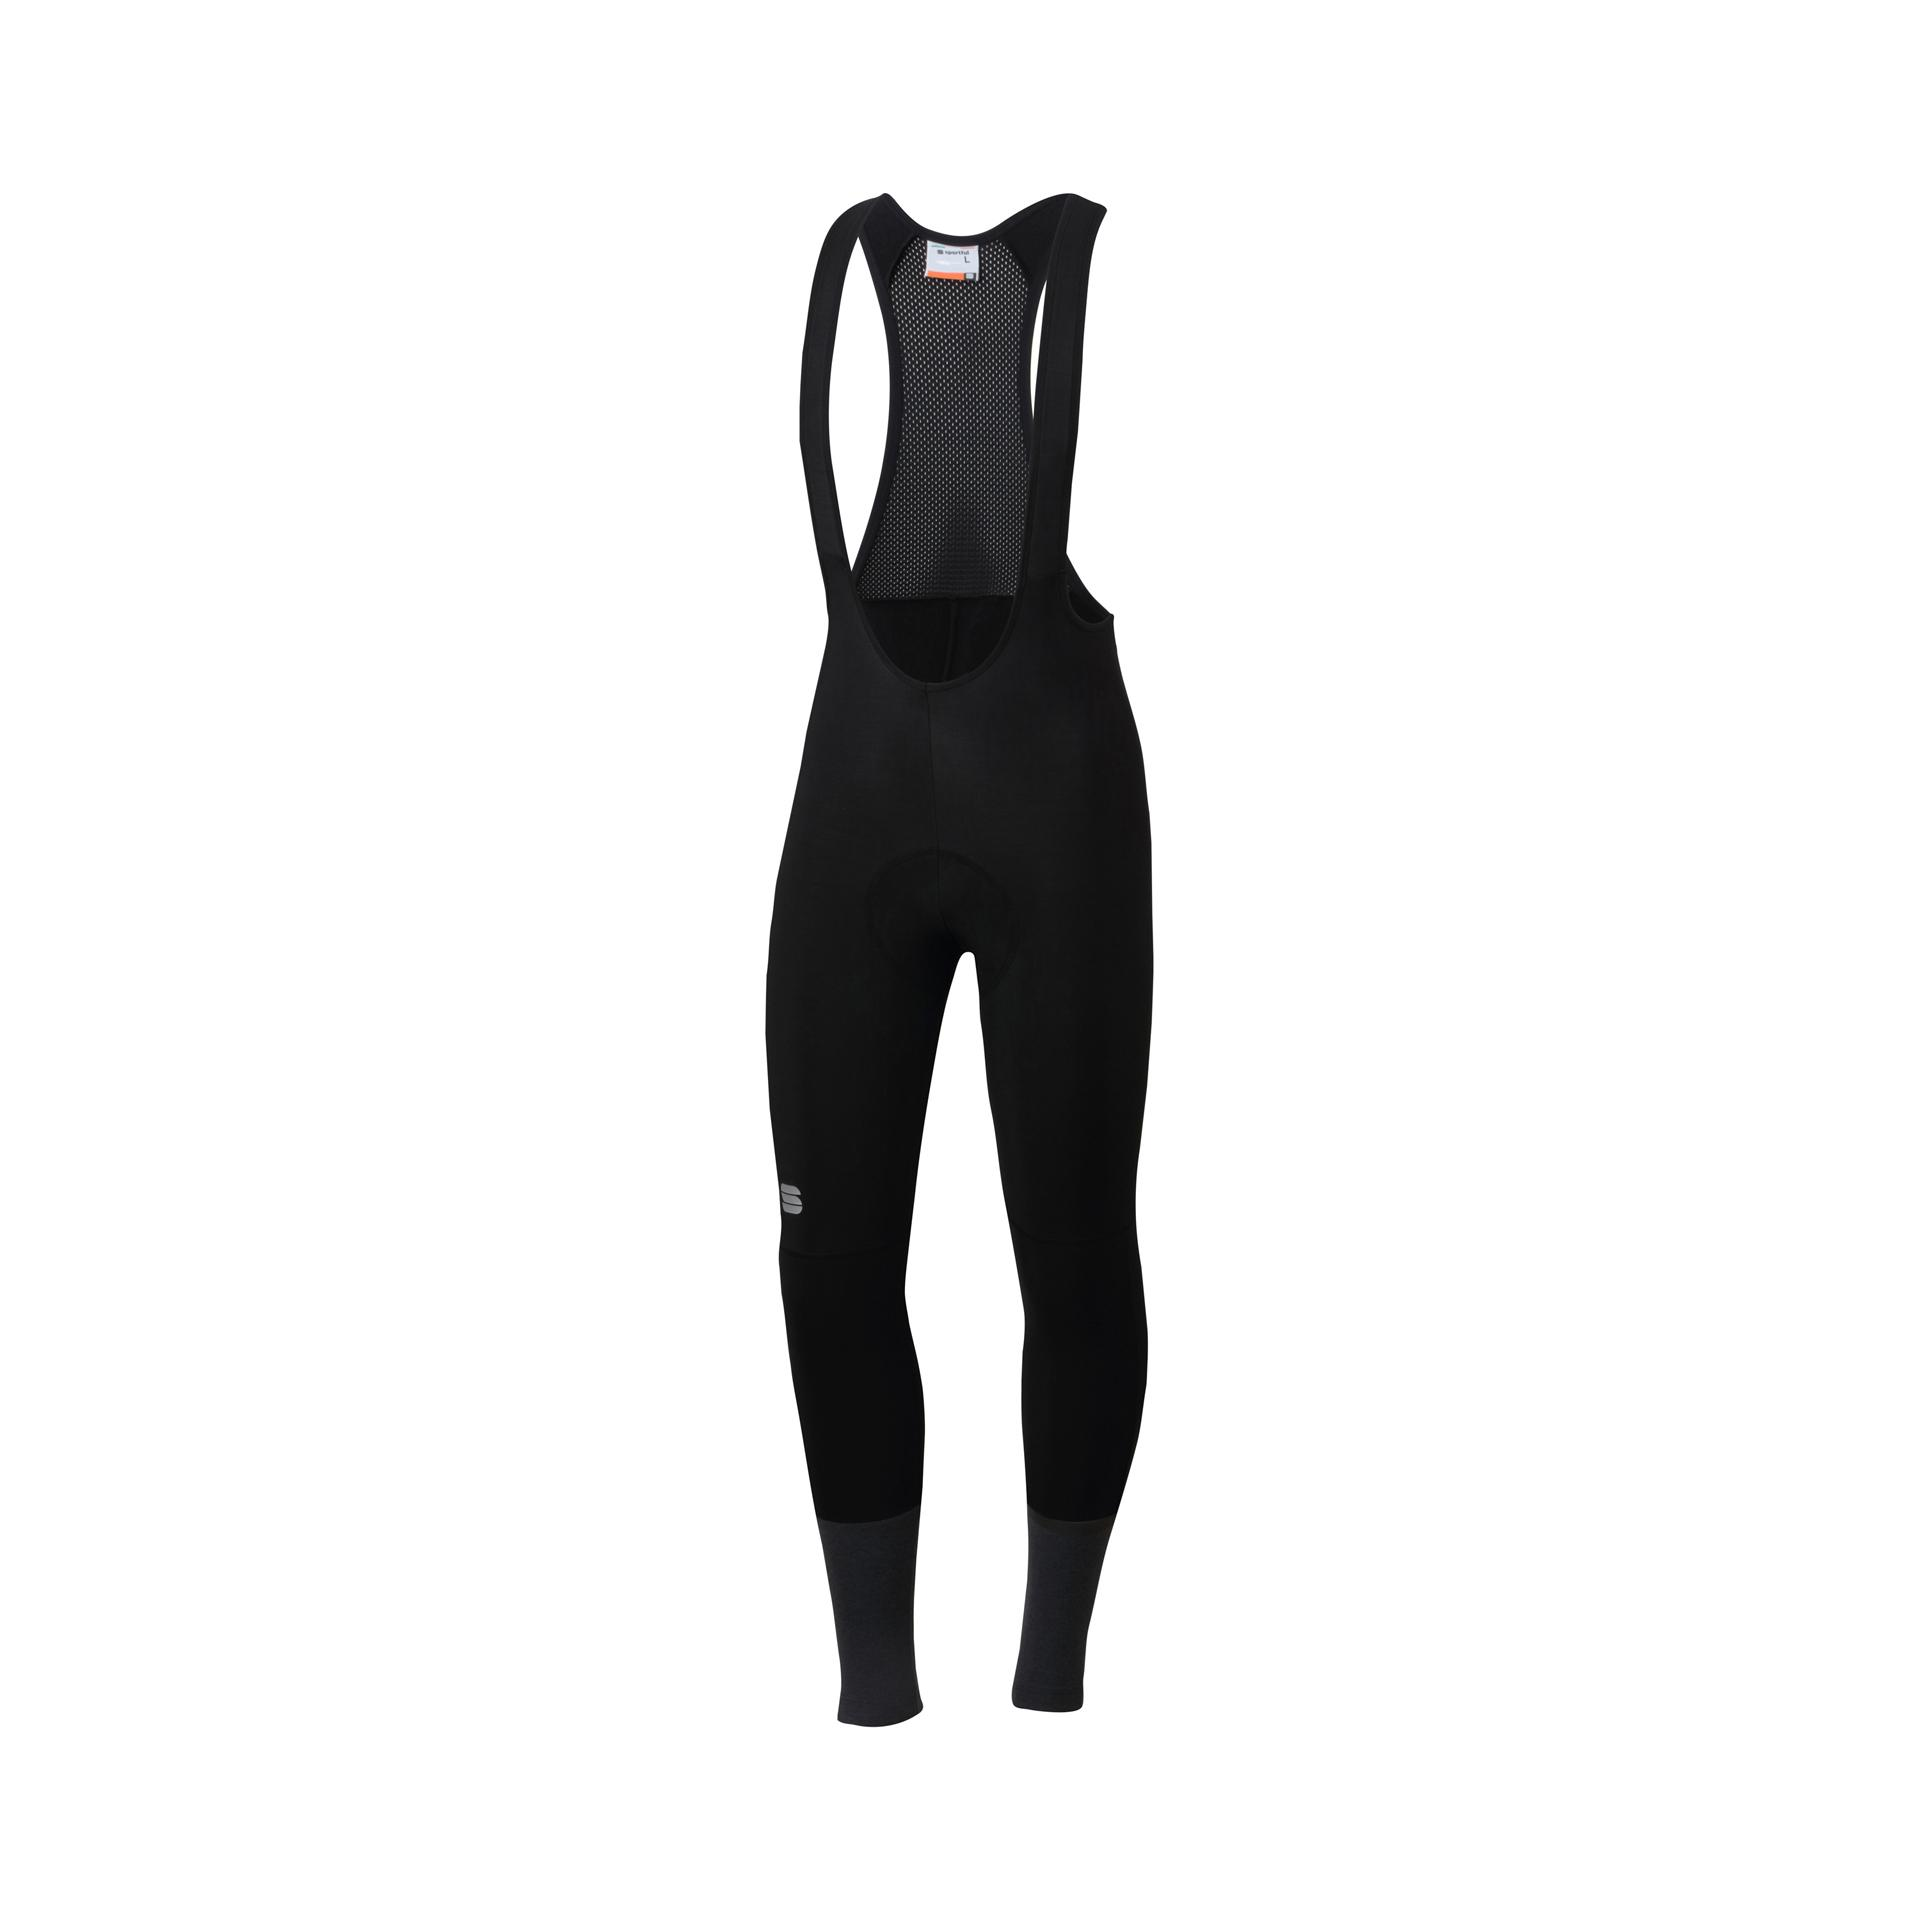 Sportful Fietsbroek lang Heren Zwart Zwart / SF Giara Bibtight-Black/Black